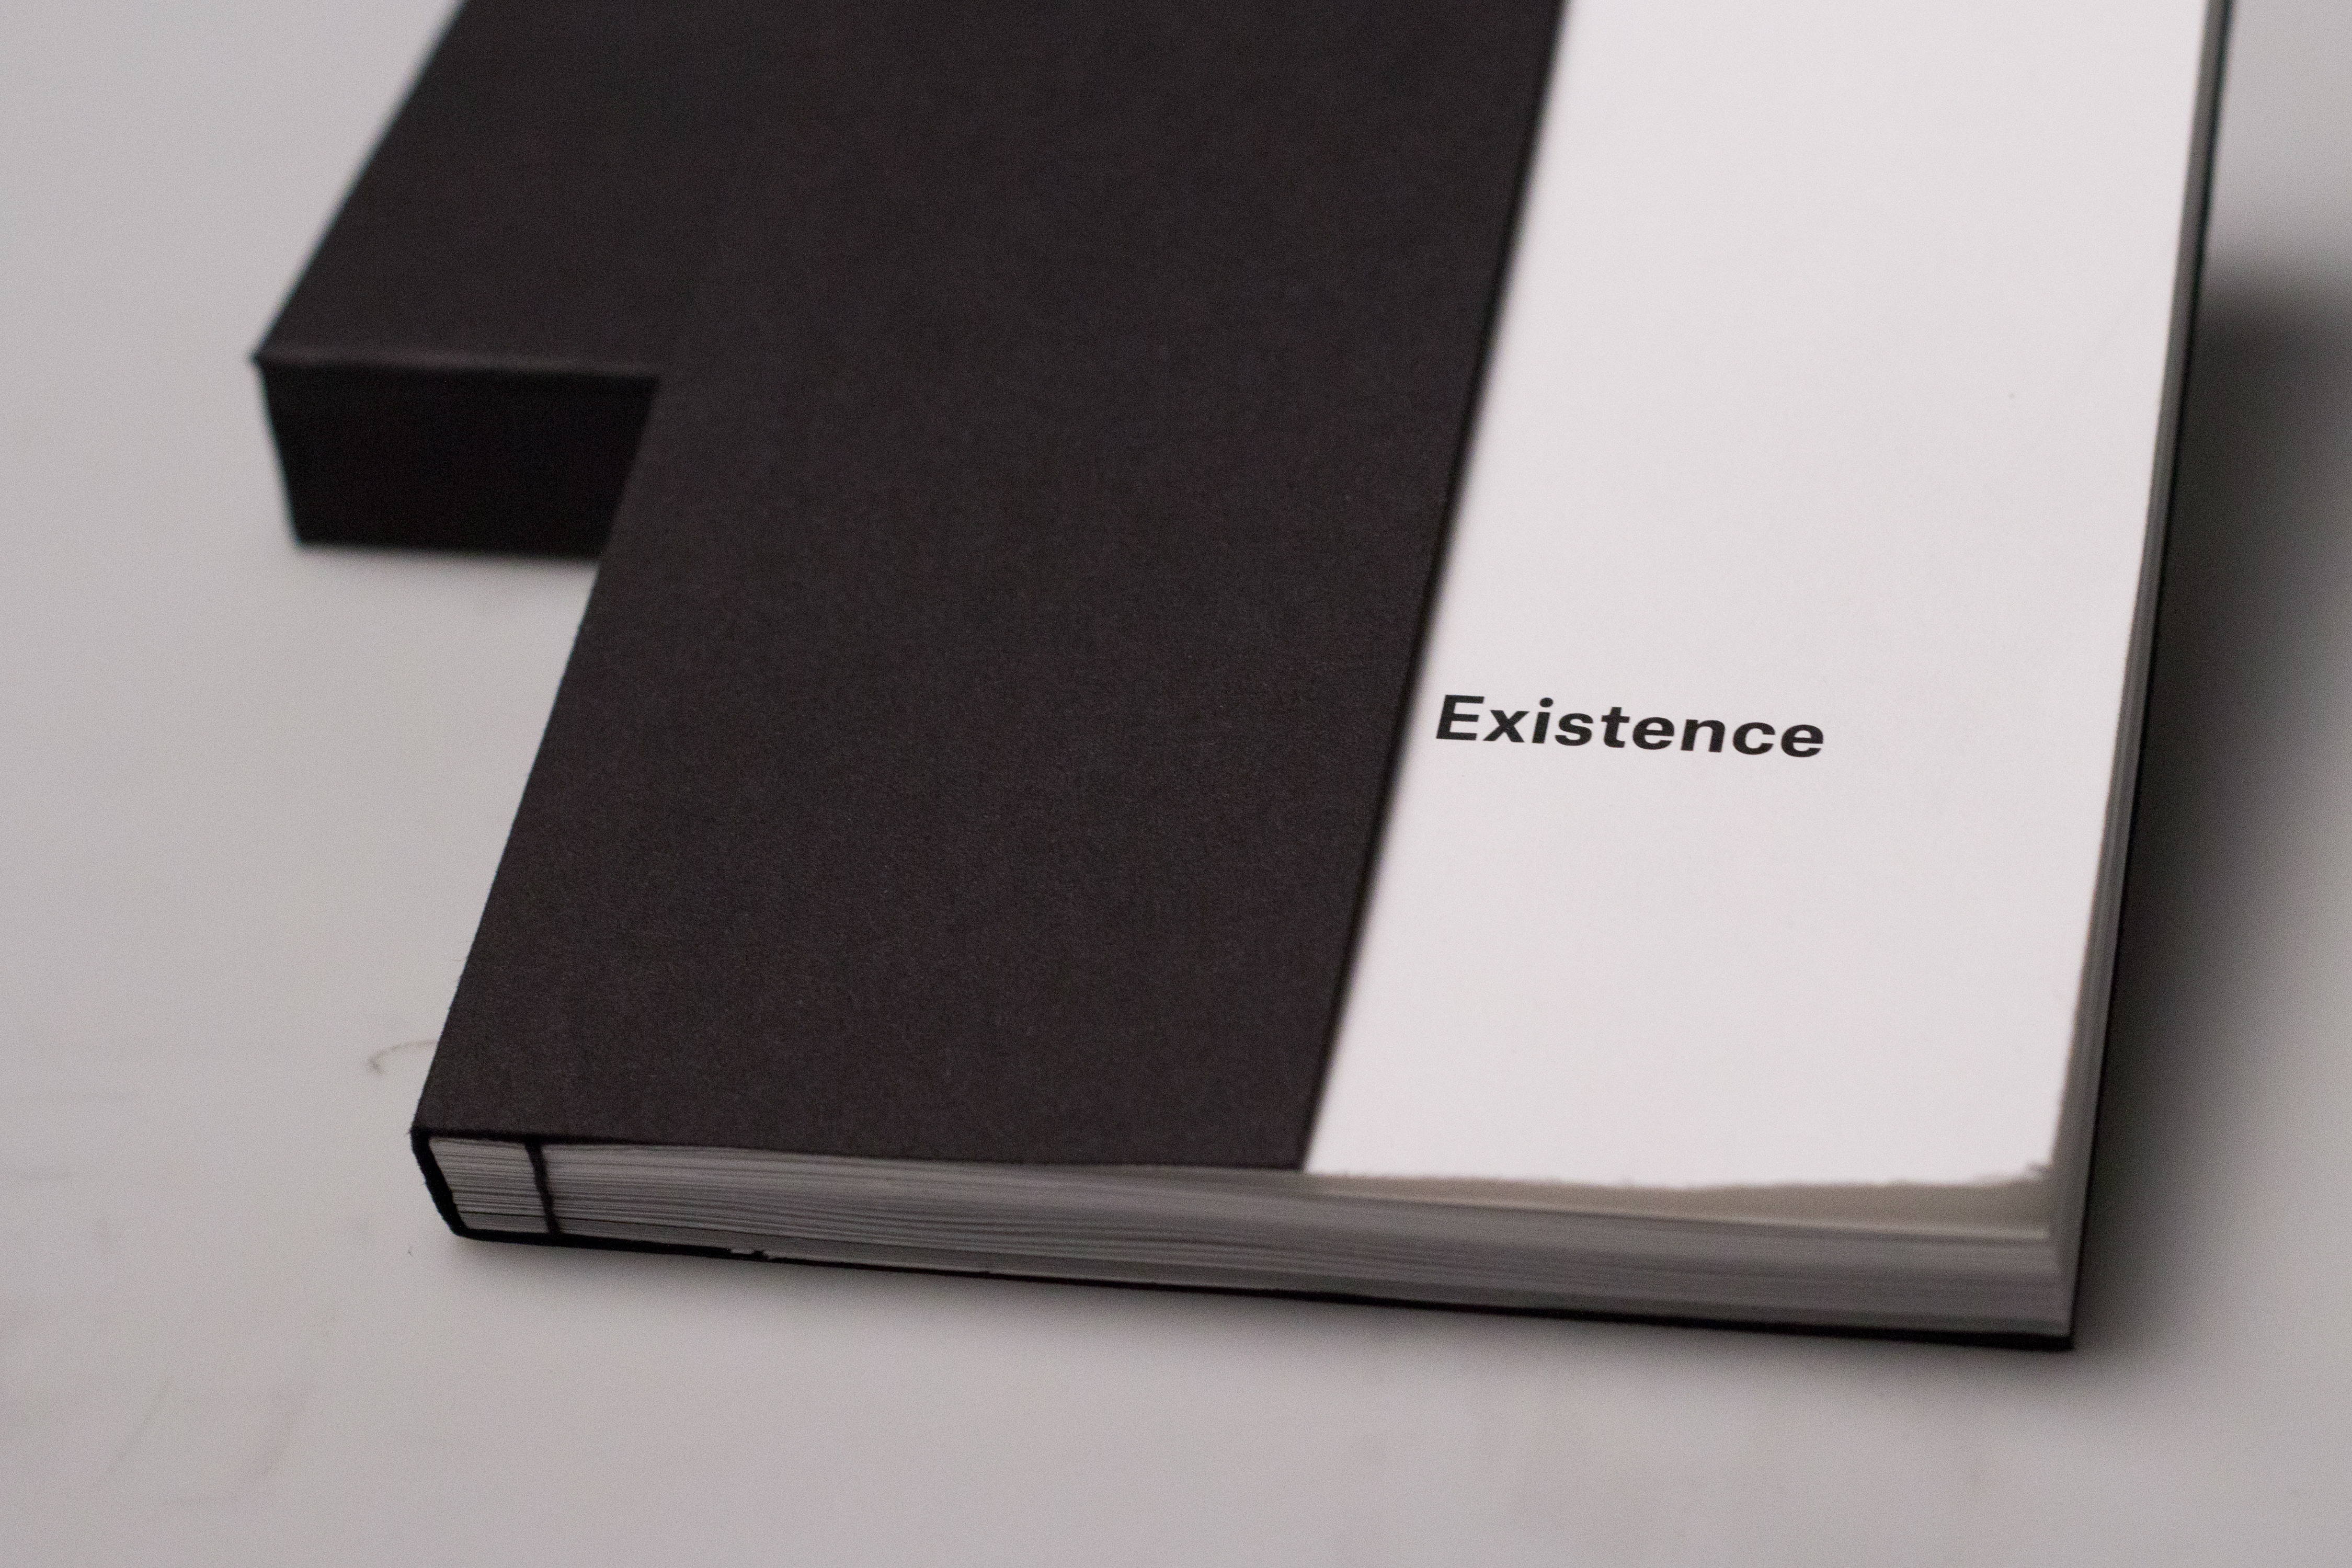 Perpetual Existence: Successful ISTD Submission